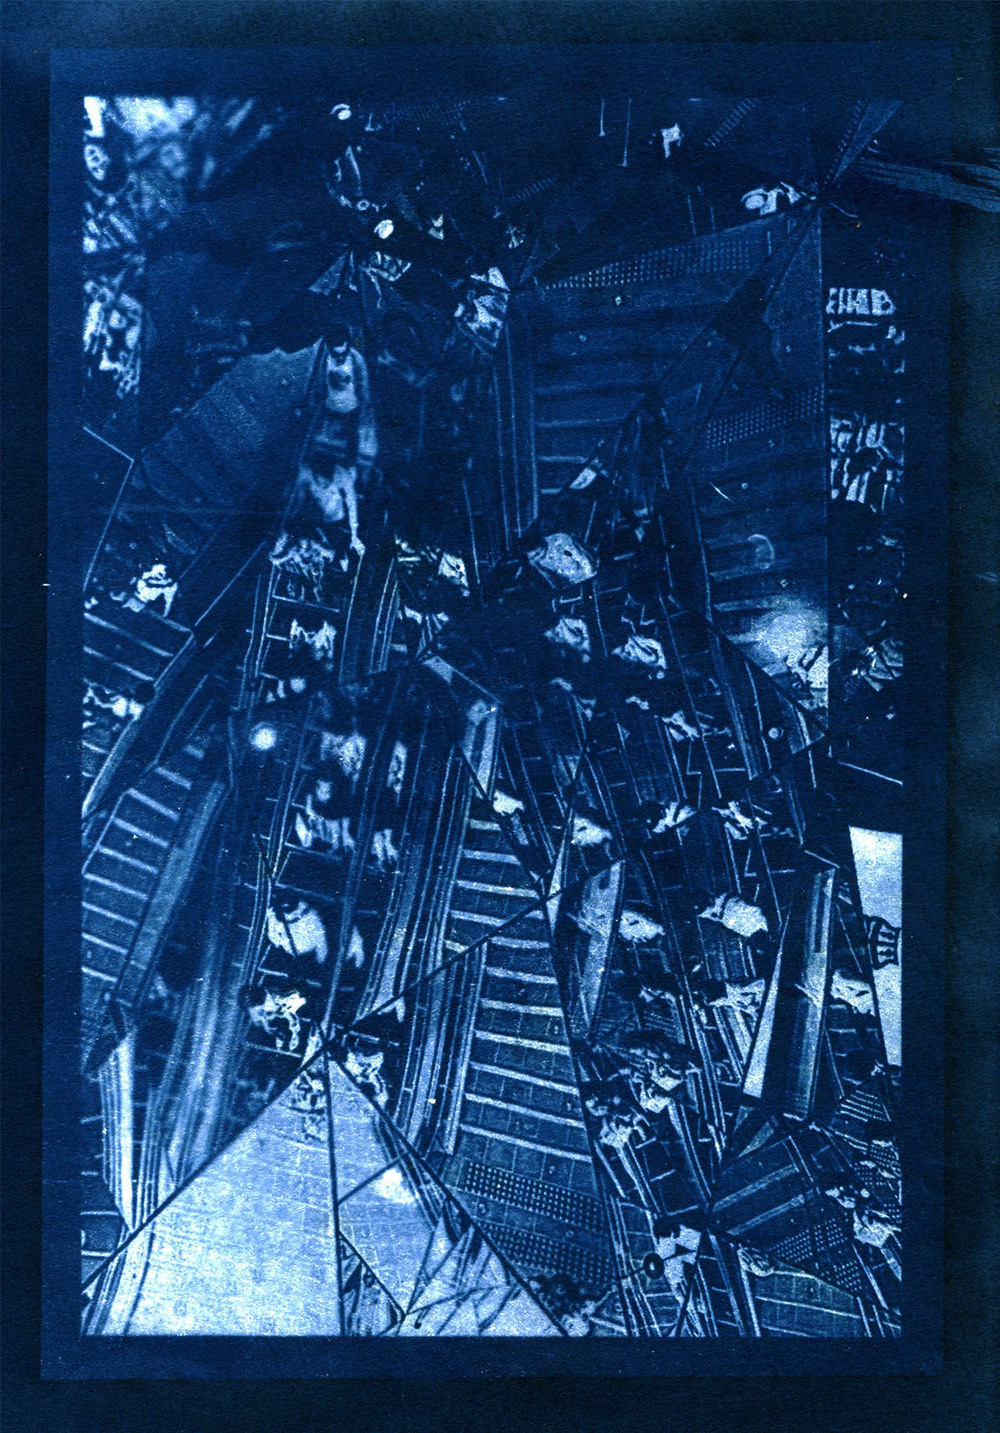 ARRcyanotype_reflect72res.jpg